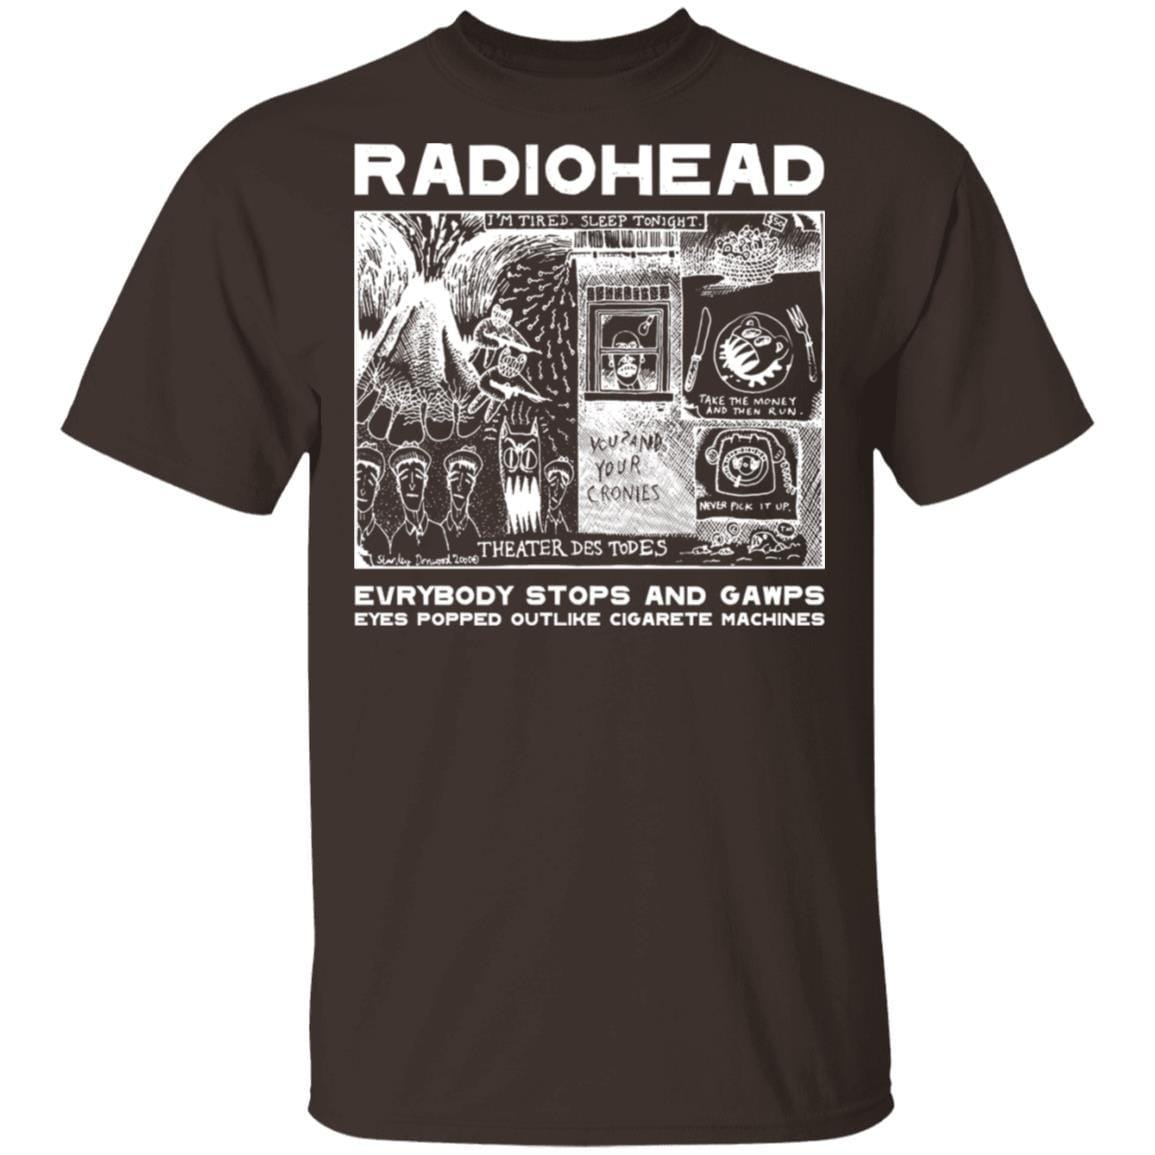 Radiohead Evrybody Stops And Gawps Eyes Popped Outlike Cigarete Machines T-Shirts, Hoodies 1049-9956-87589175-48152 - Tee Ript